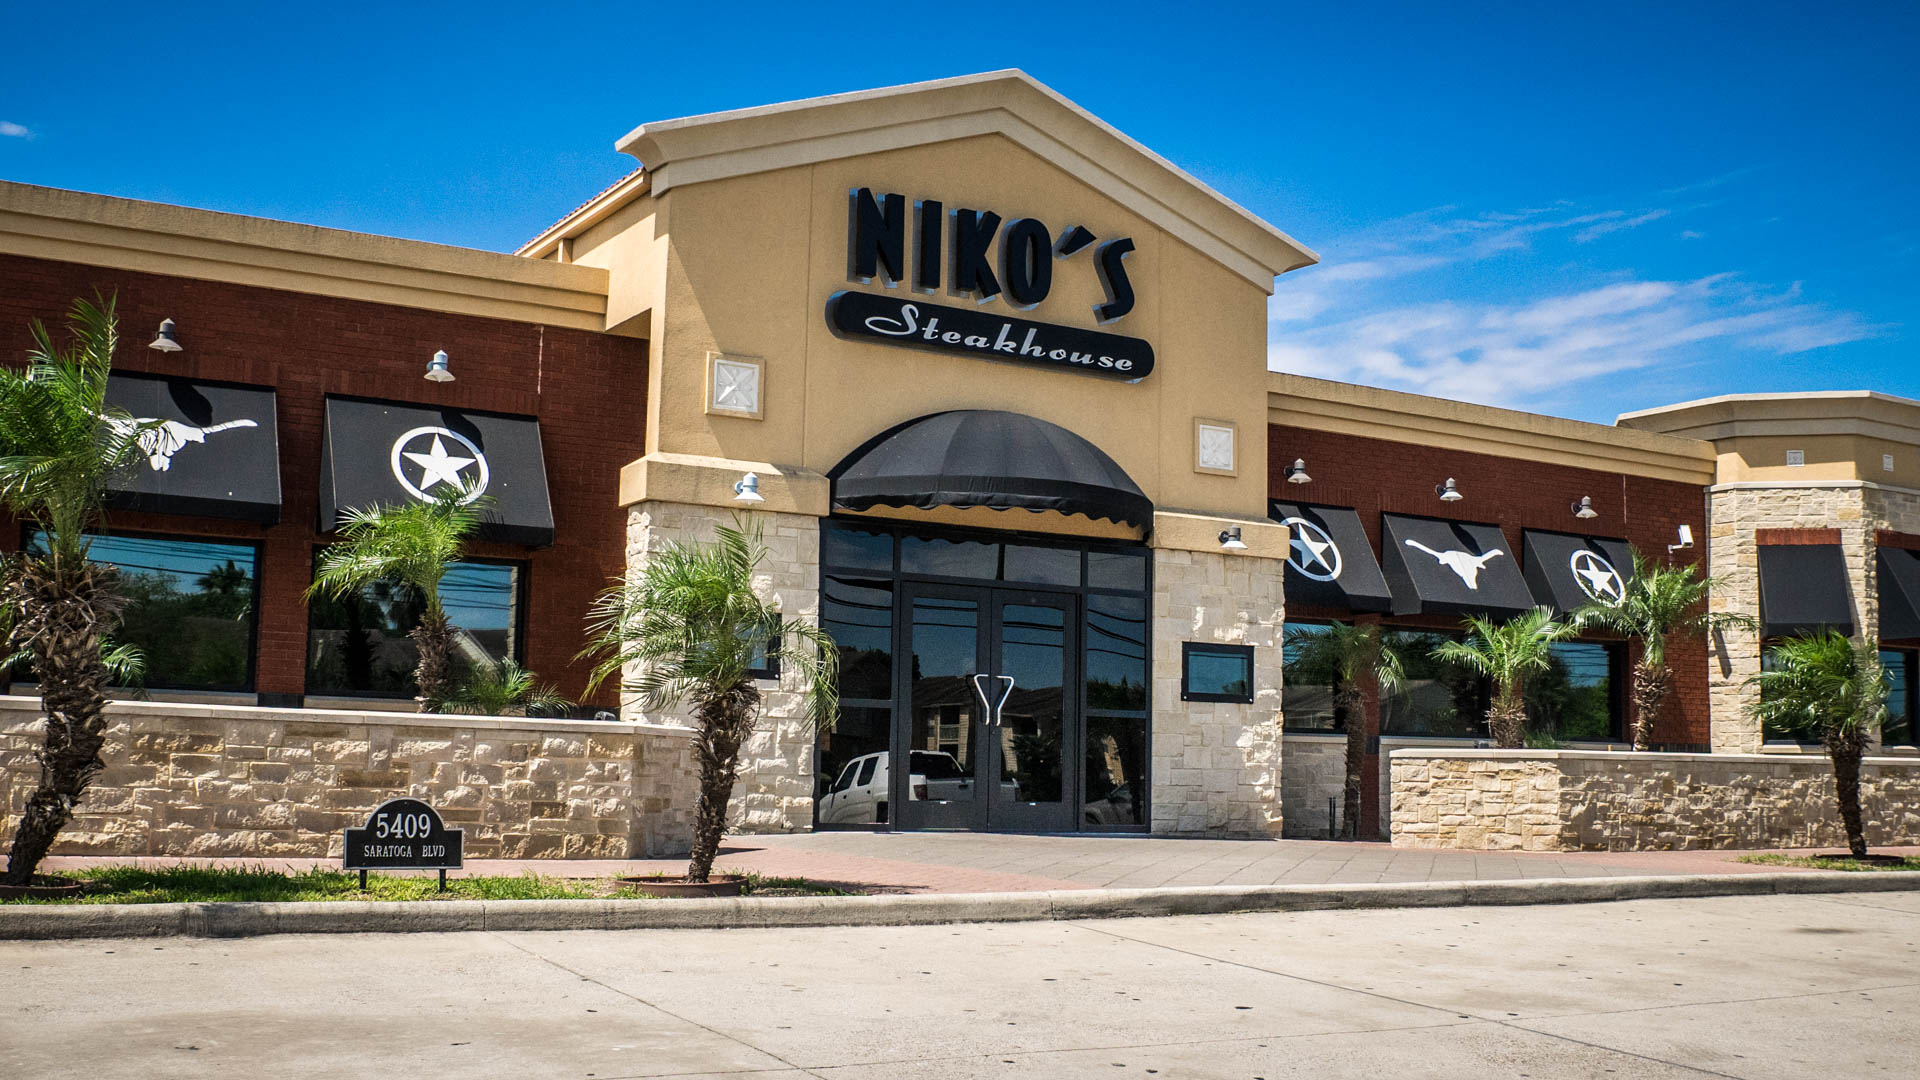 exterior building of Nikos Steakhouse